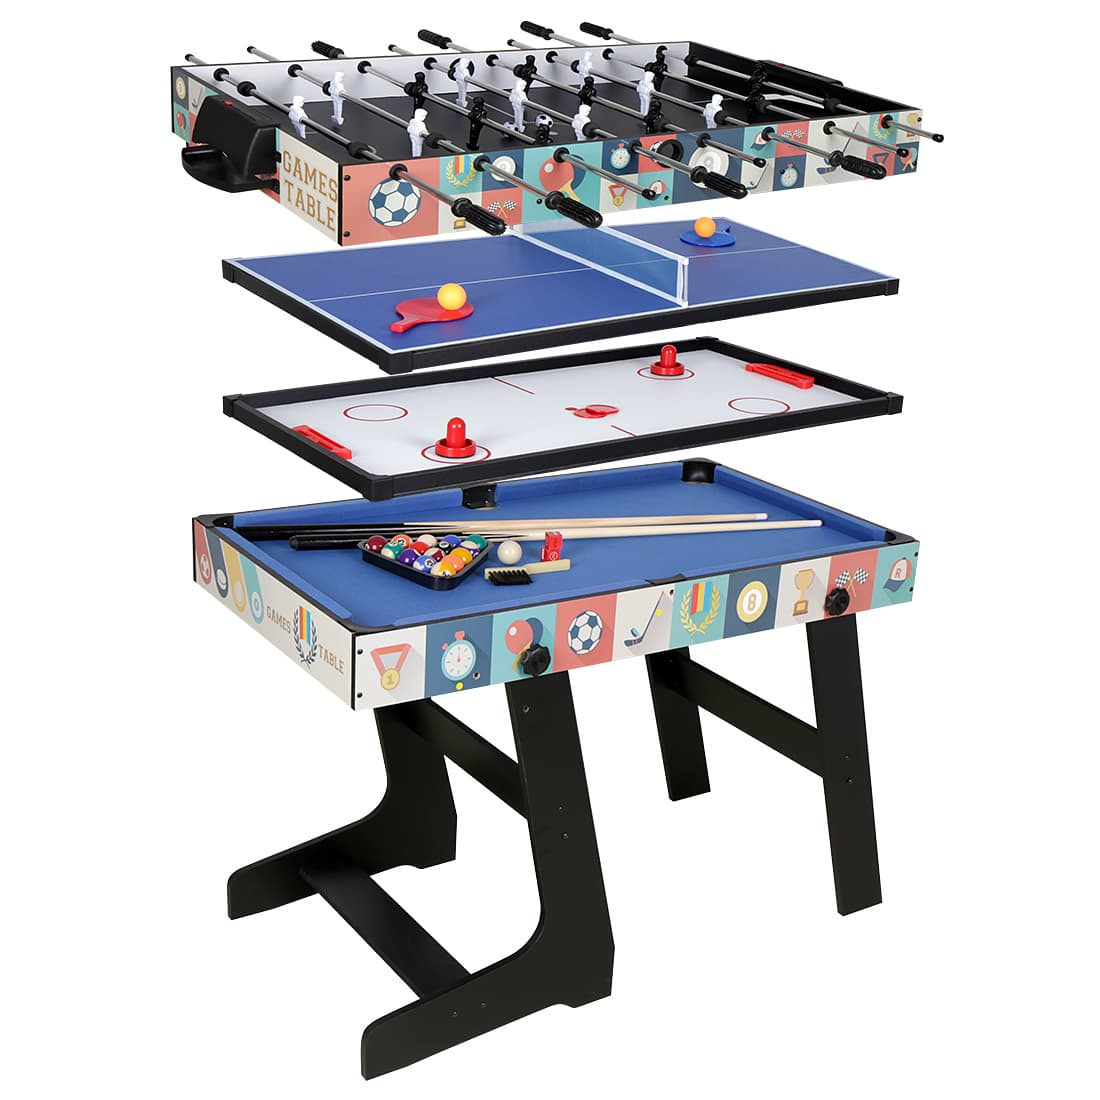 HLC 	fold up Game Table-Contractile Tabletop Game-Air powered hockey-Billiards-Table tennis-Foosball-4 different playground boards